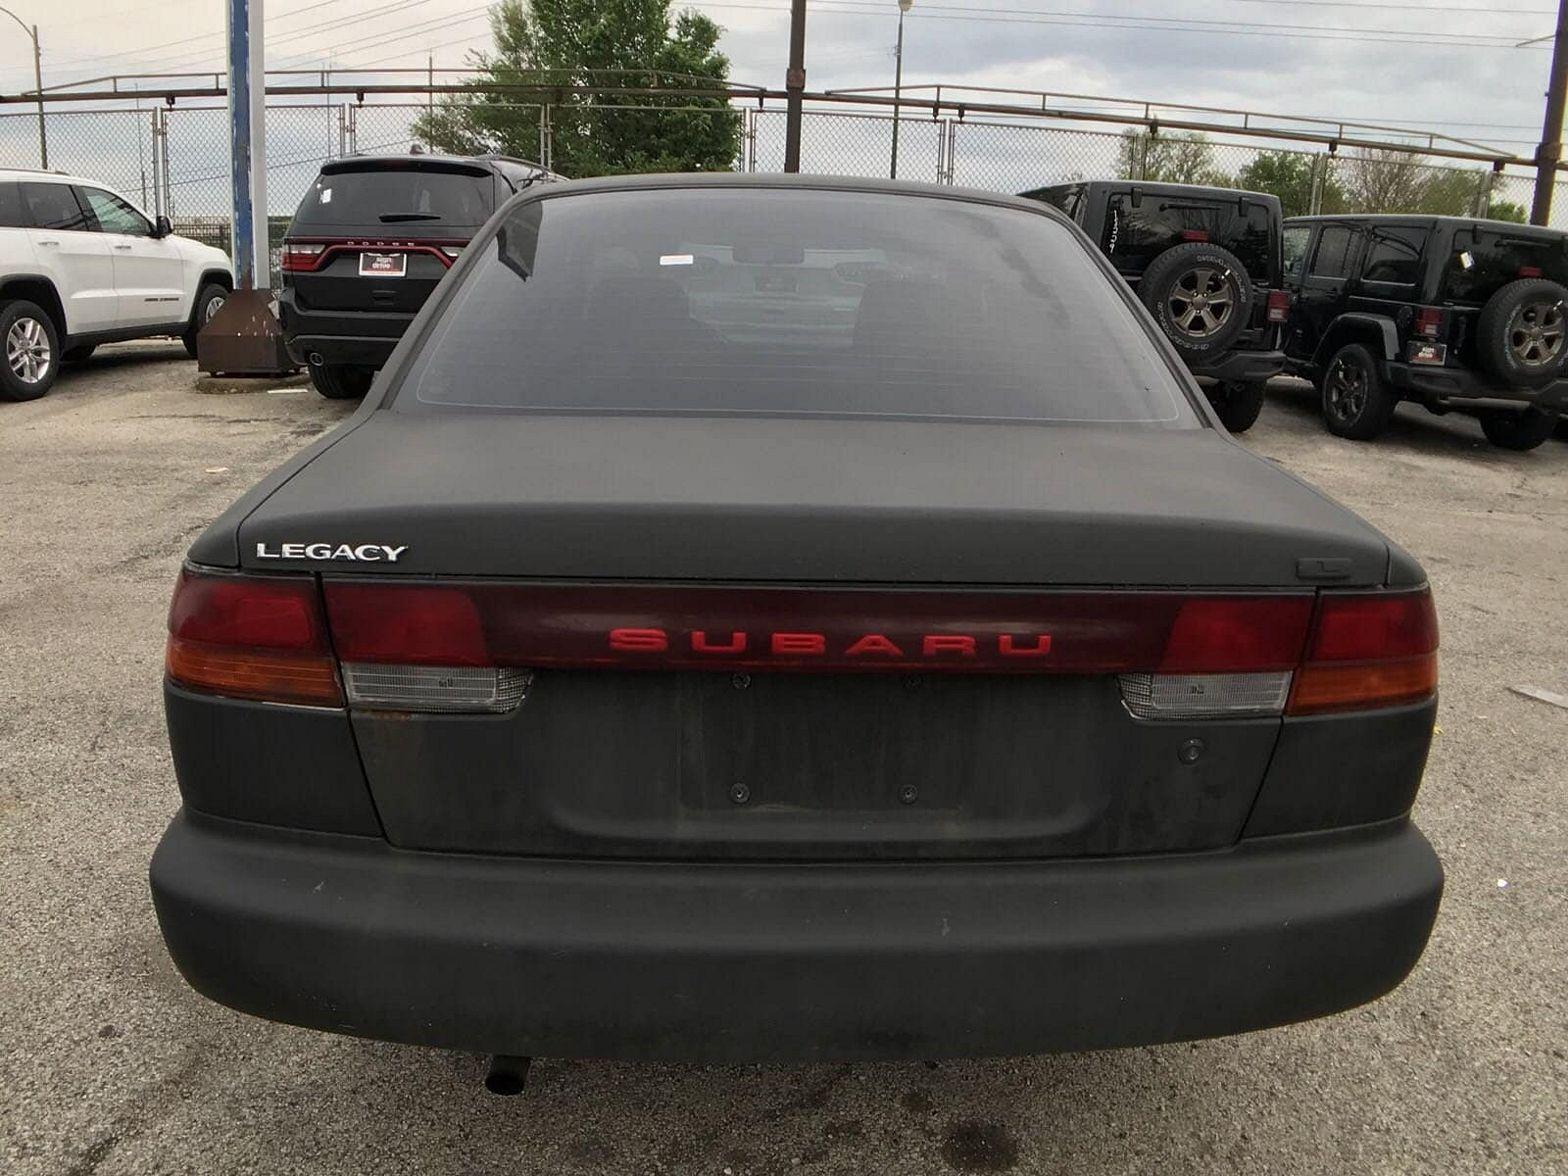 1995 Subaru Legacy 990 For Sale 990